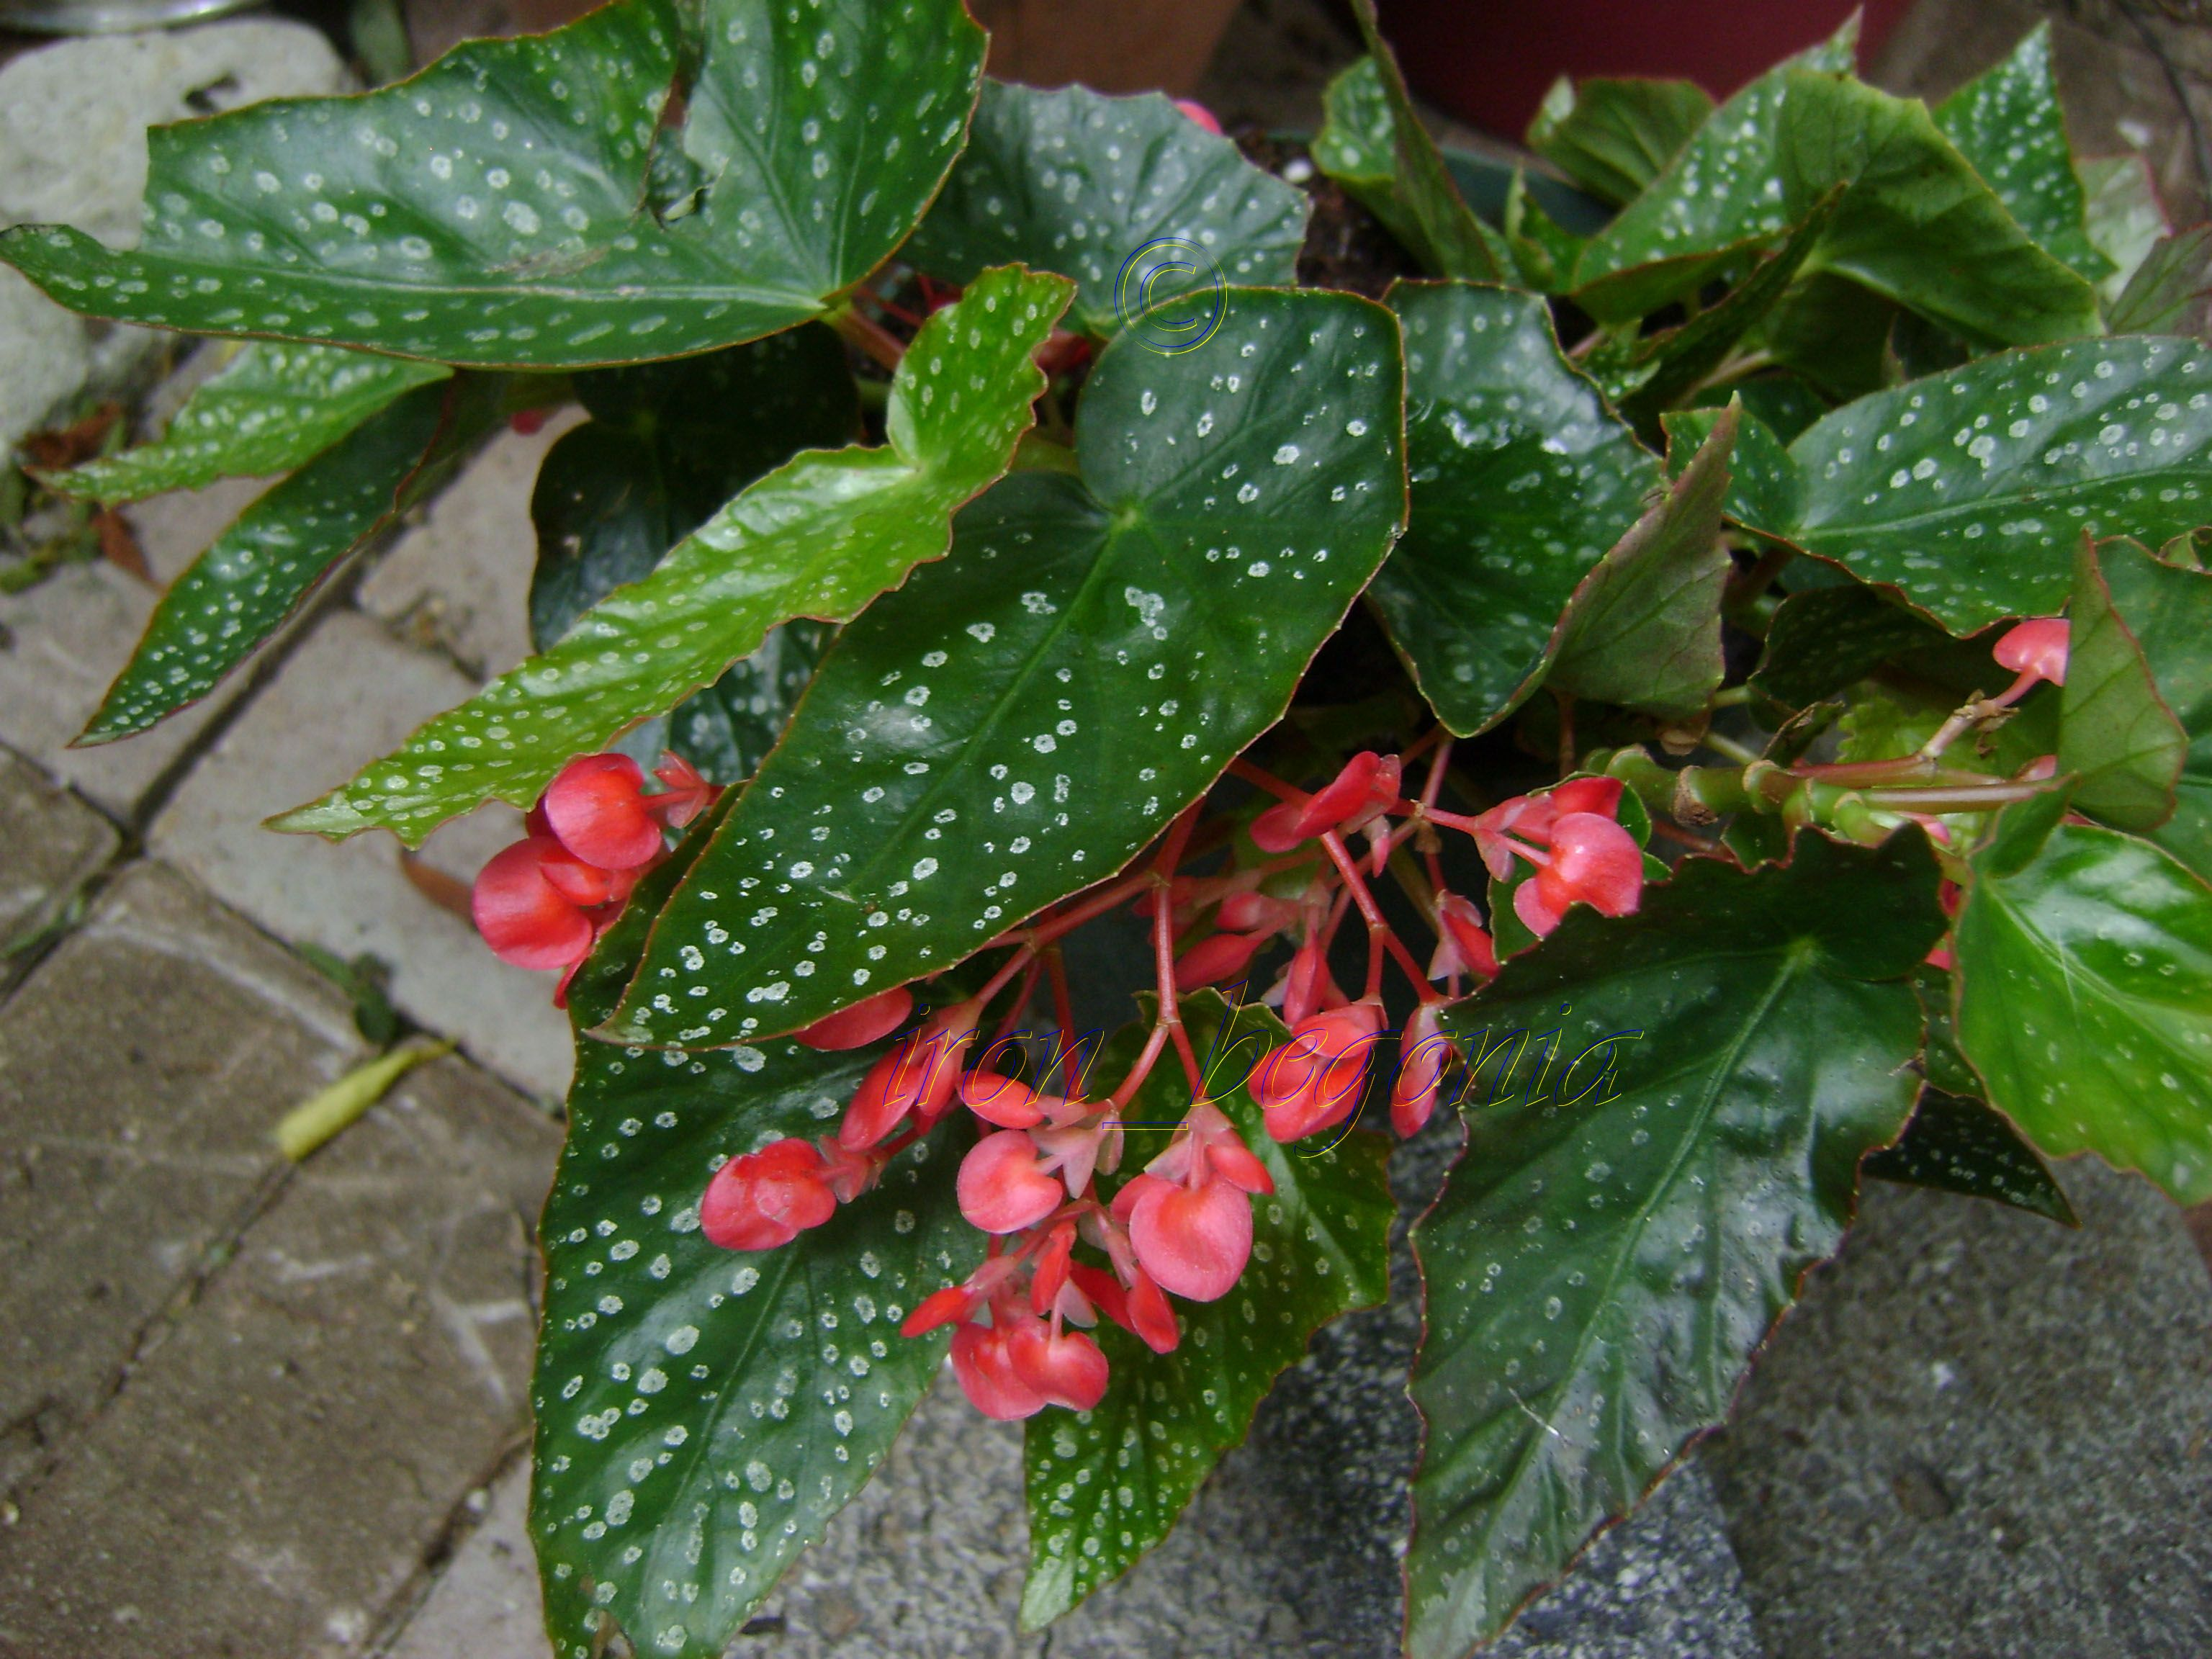 Angel Wing Begonia Snow Capped Has Medium Size Leaves The Leaves Have Small Silvery White Spots The Blooms Are Beautiful It Begonya Bitki Saksida Cicekler